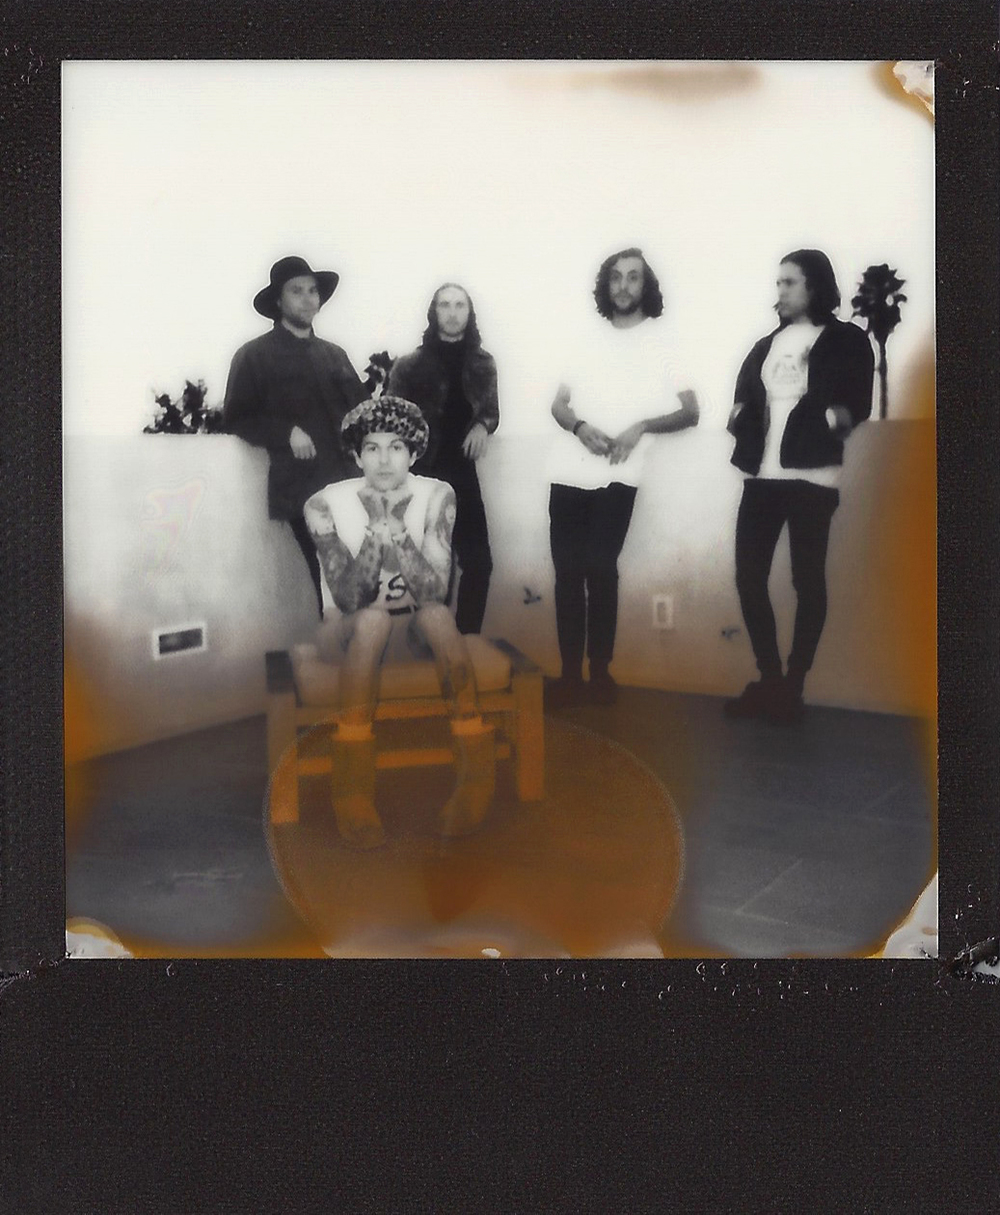 The-NBHD-Polaroid-14-casenruiz.jpg